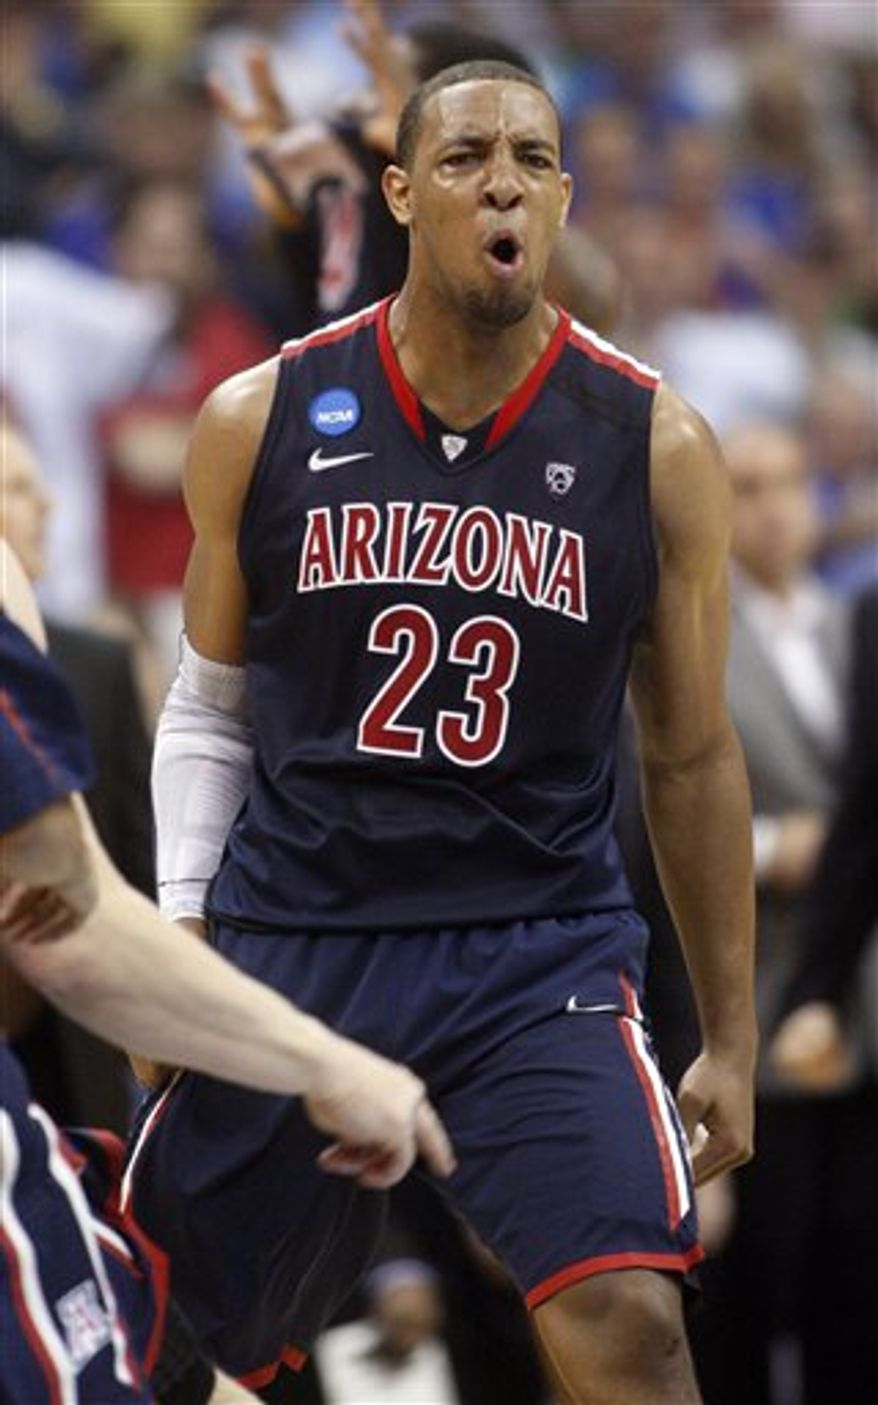 Arizona's Derrick Williams, second from left, is embraced by Jordin Mayes after defeating Texas 70-69 at a West Regional NCAA tournament third-round college basketball game on Sunday, March 20, 2011, in Tulsa, Okla. (AP Photo/Sue Ogrocki)